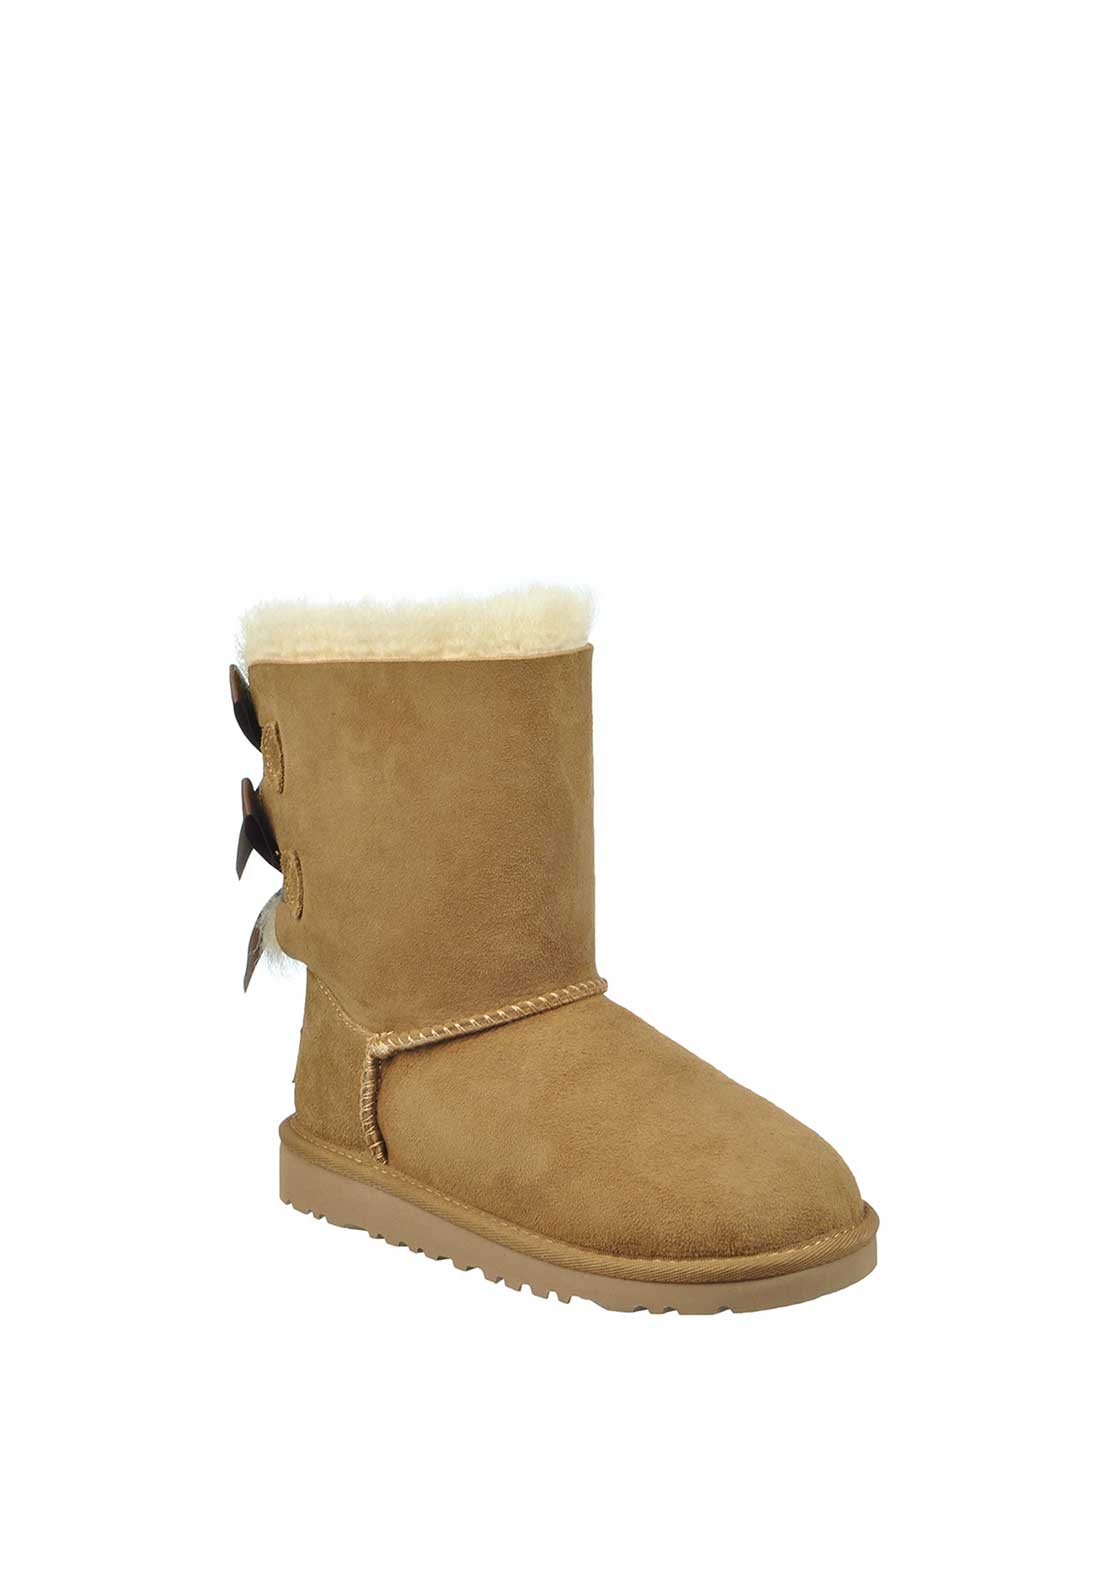 UGG Australia Infant Girls Suede Bailey Bow Boots, Chestnut